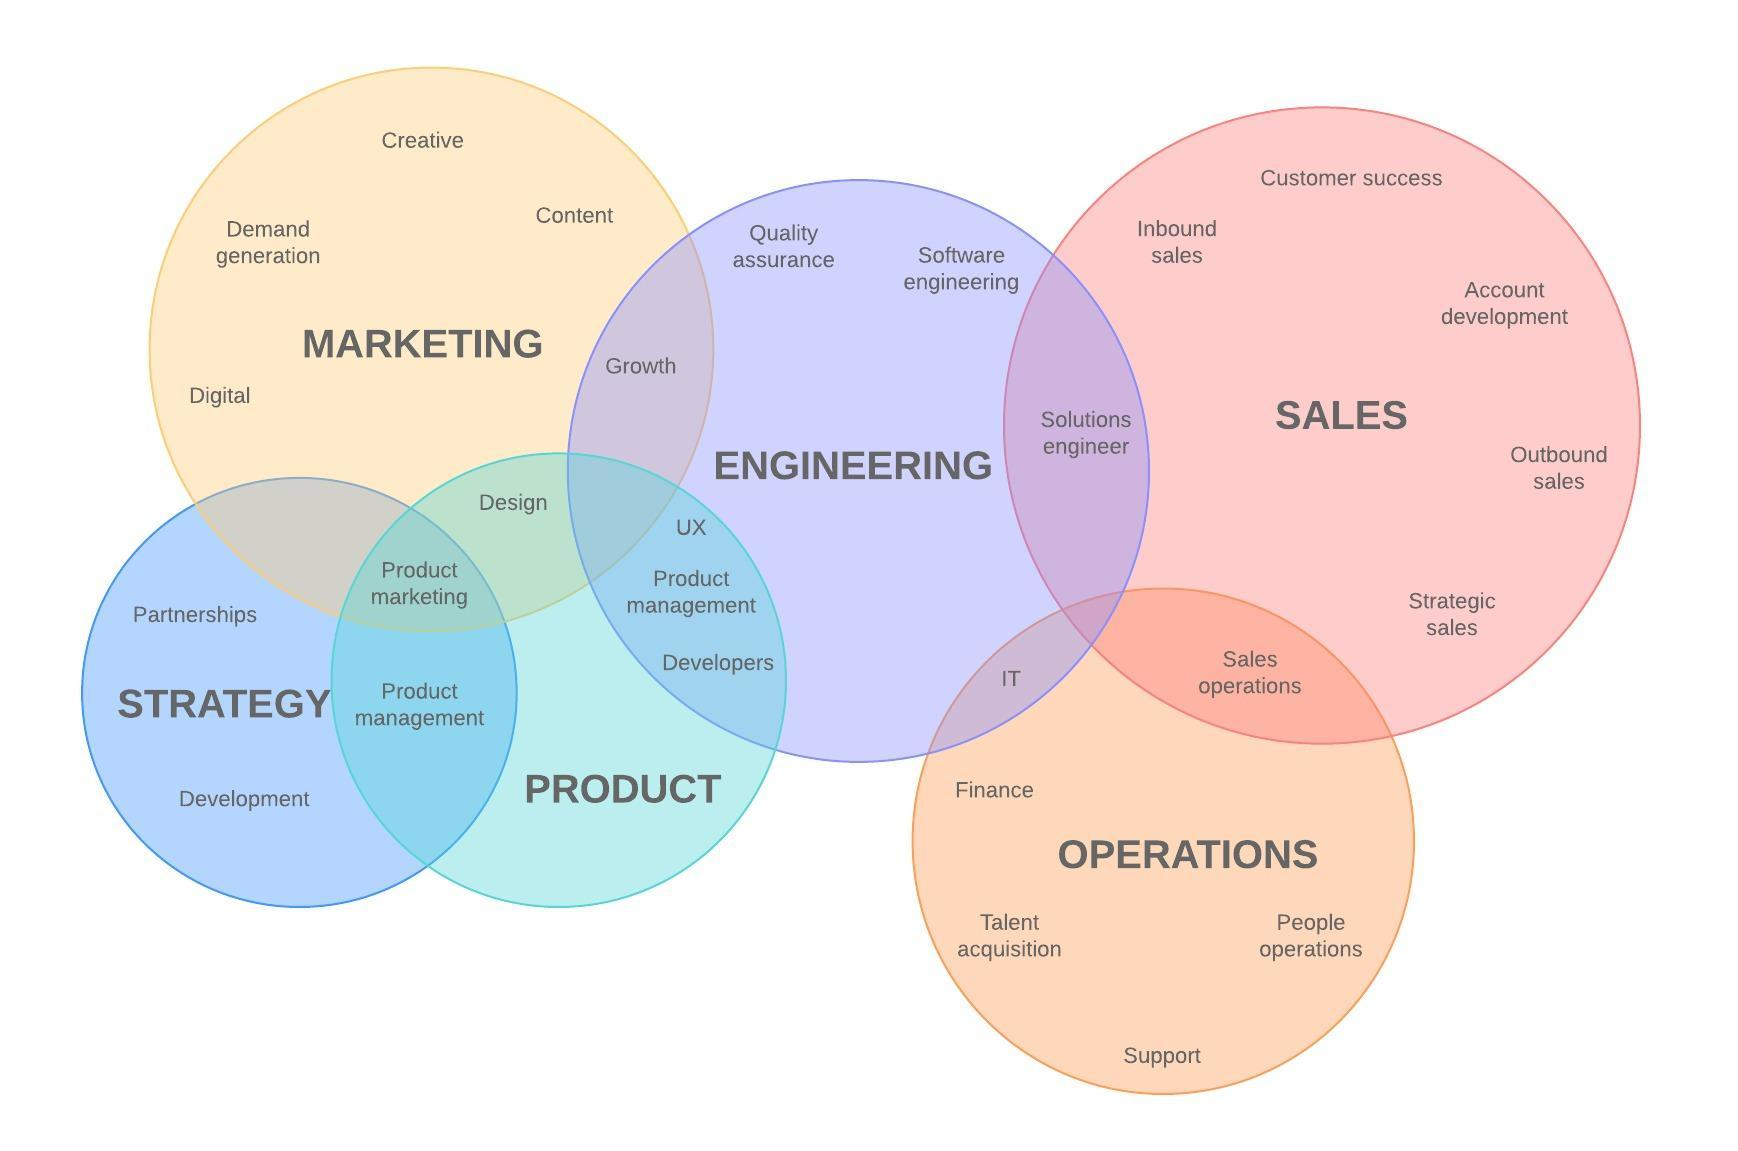 a Venn diagram showing different departments of a company and where they overlap